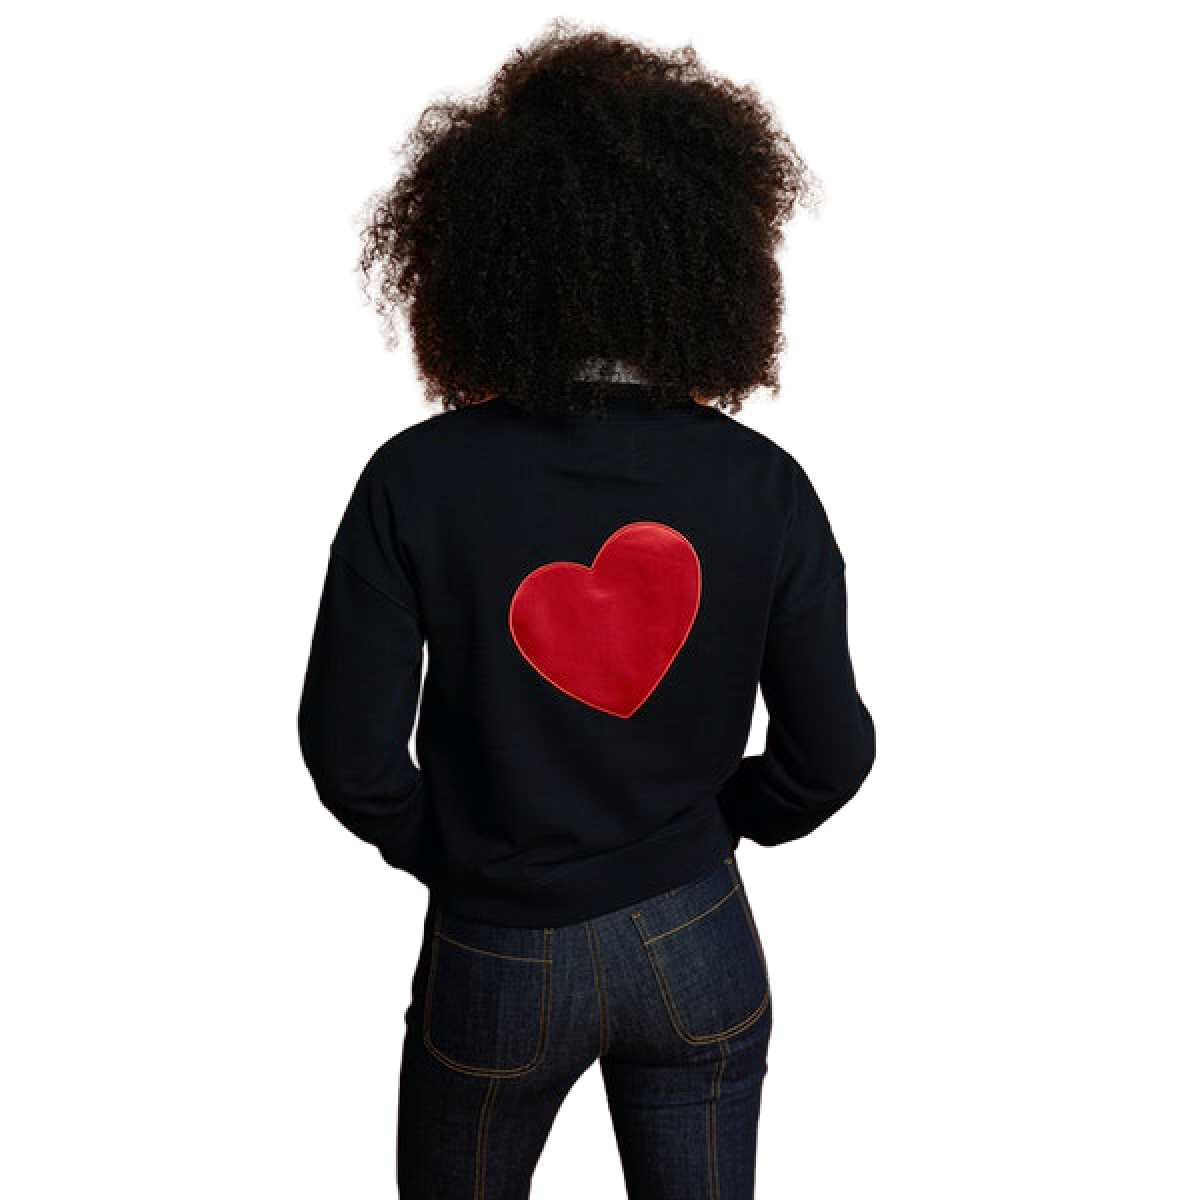 fred perry heart detail sweatshirt sg7115 black side 0989042001583278863 1583278827 removebg preview